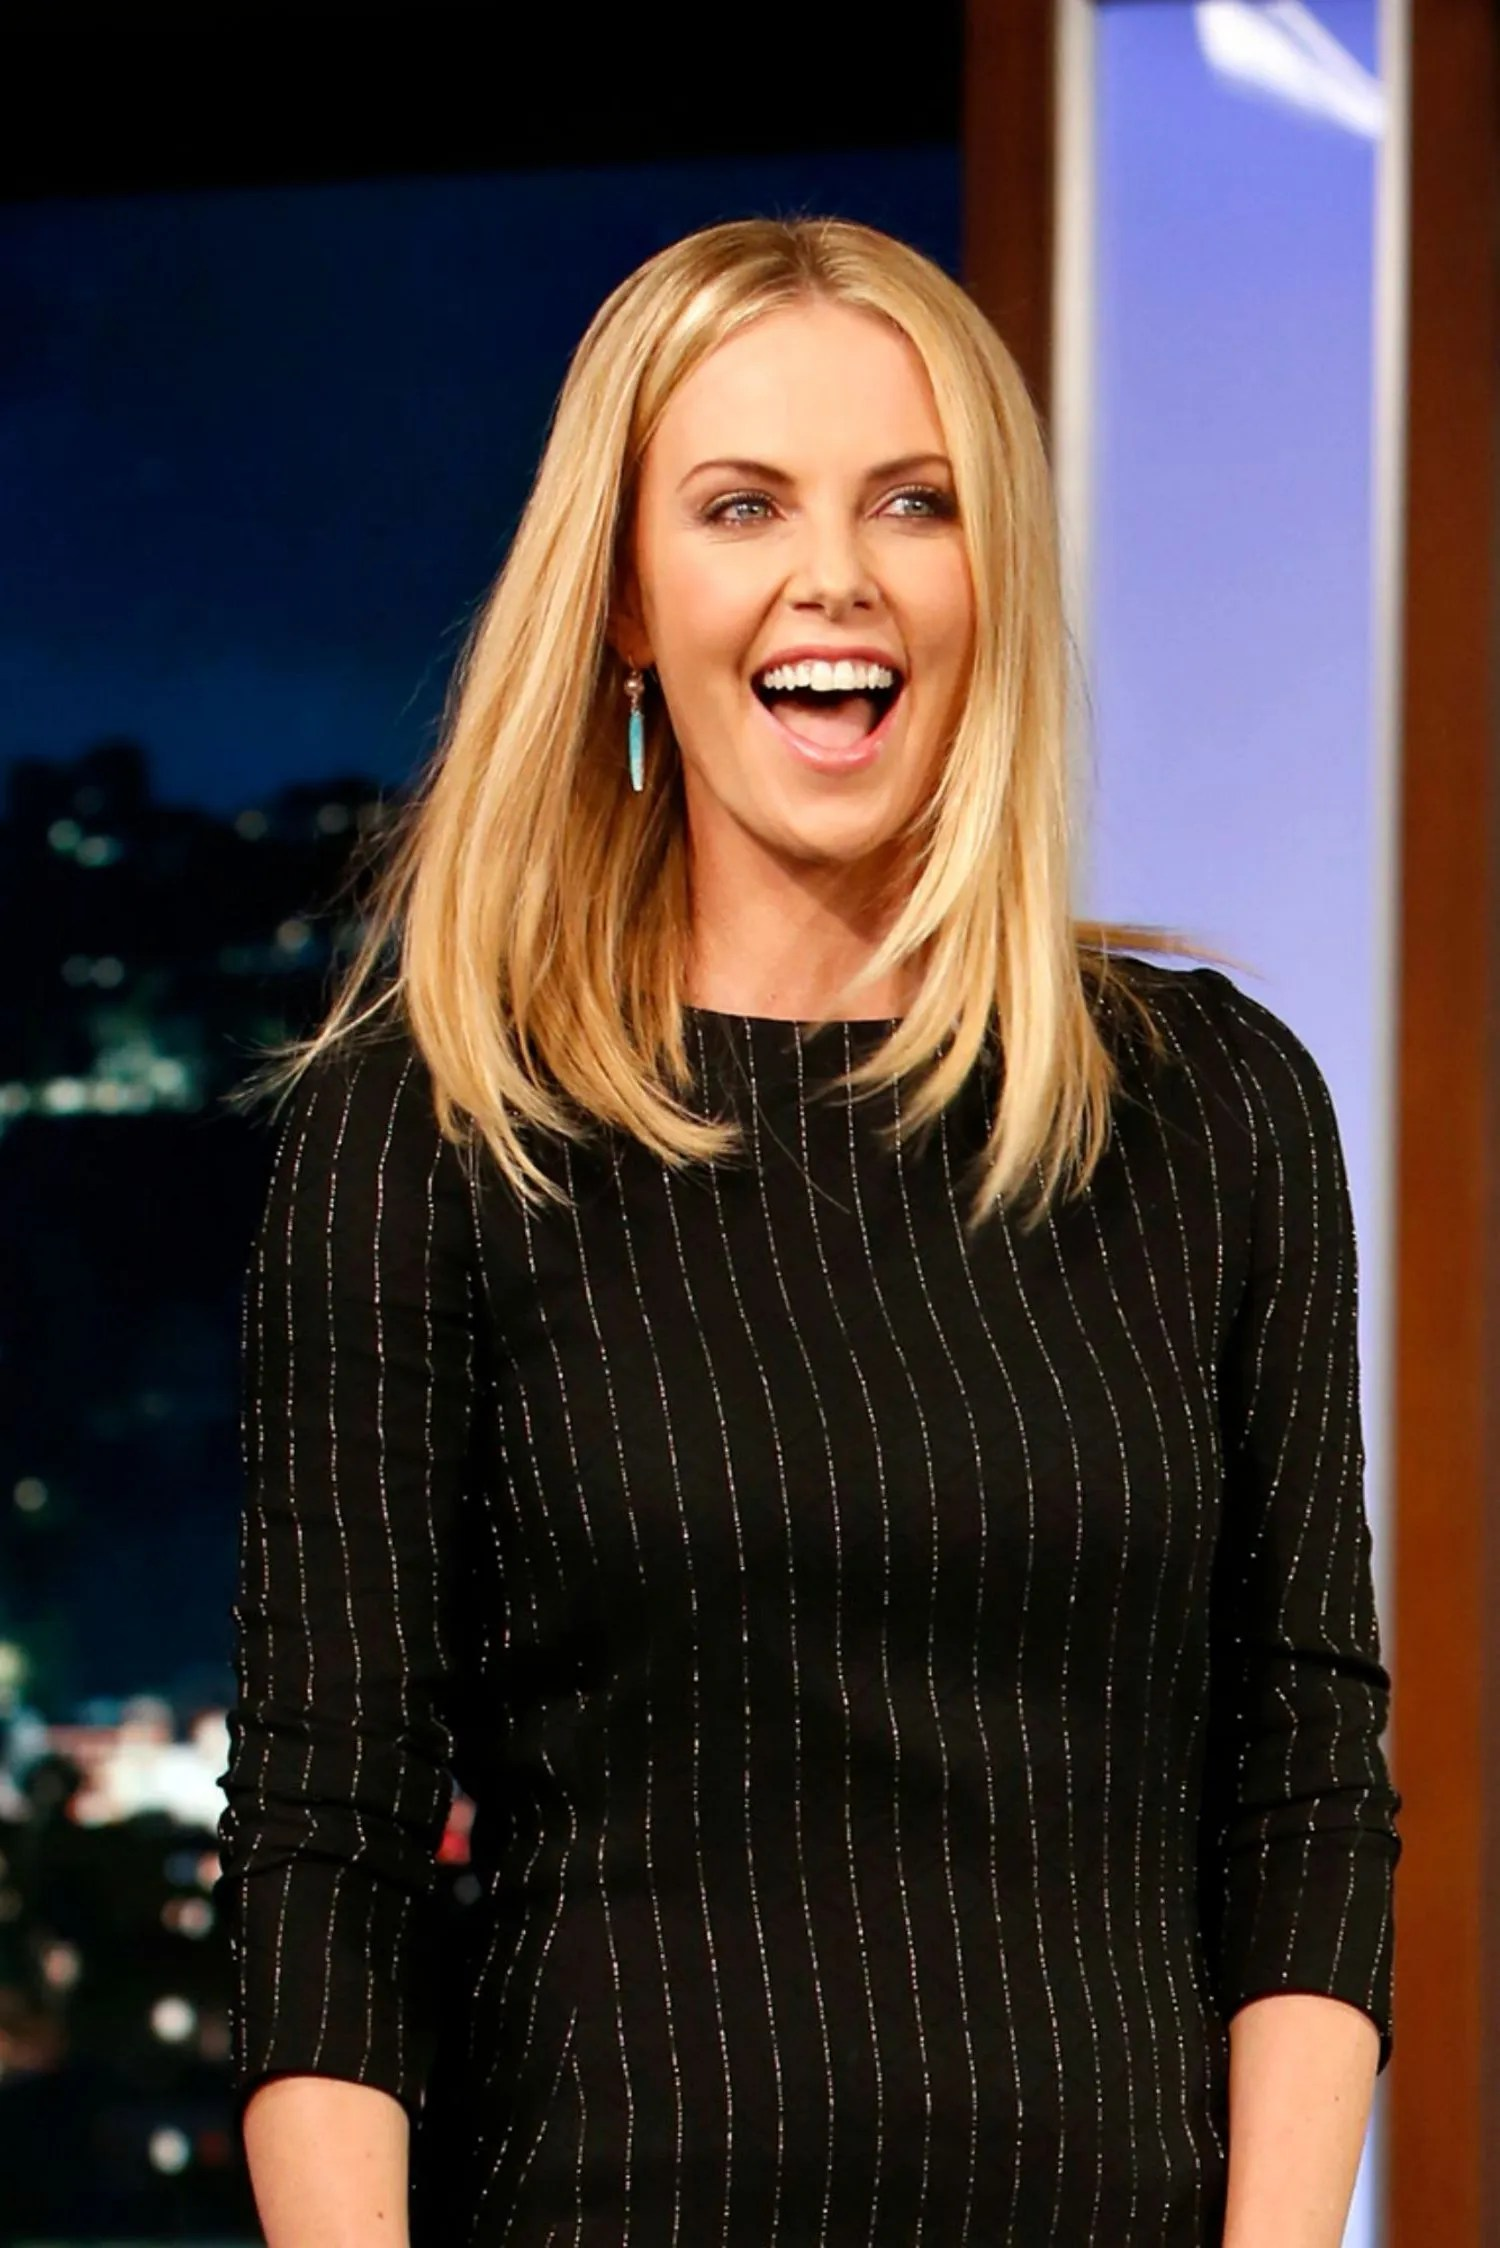 Charlize Theron Haircut 2015 : charlize, theron, haircut, Charlize, Theron, Chopped, Super, Short, Glamour